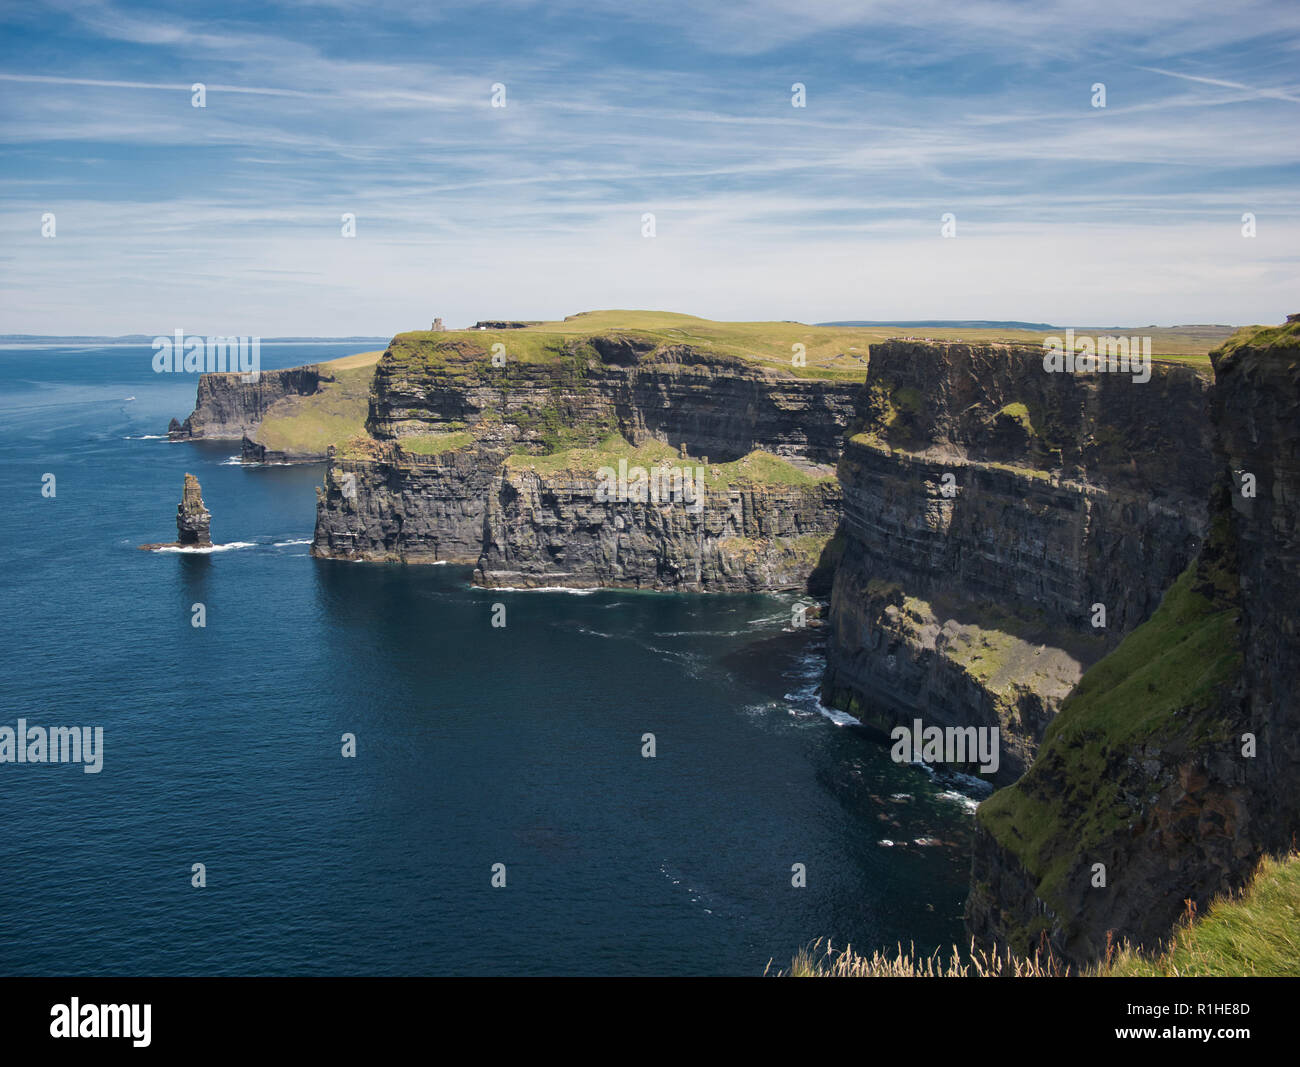 The steep cliffs of the Cliff of Moher on the southwest coast of Ireland Stock Photo